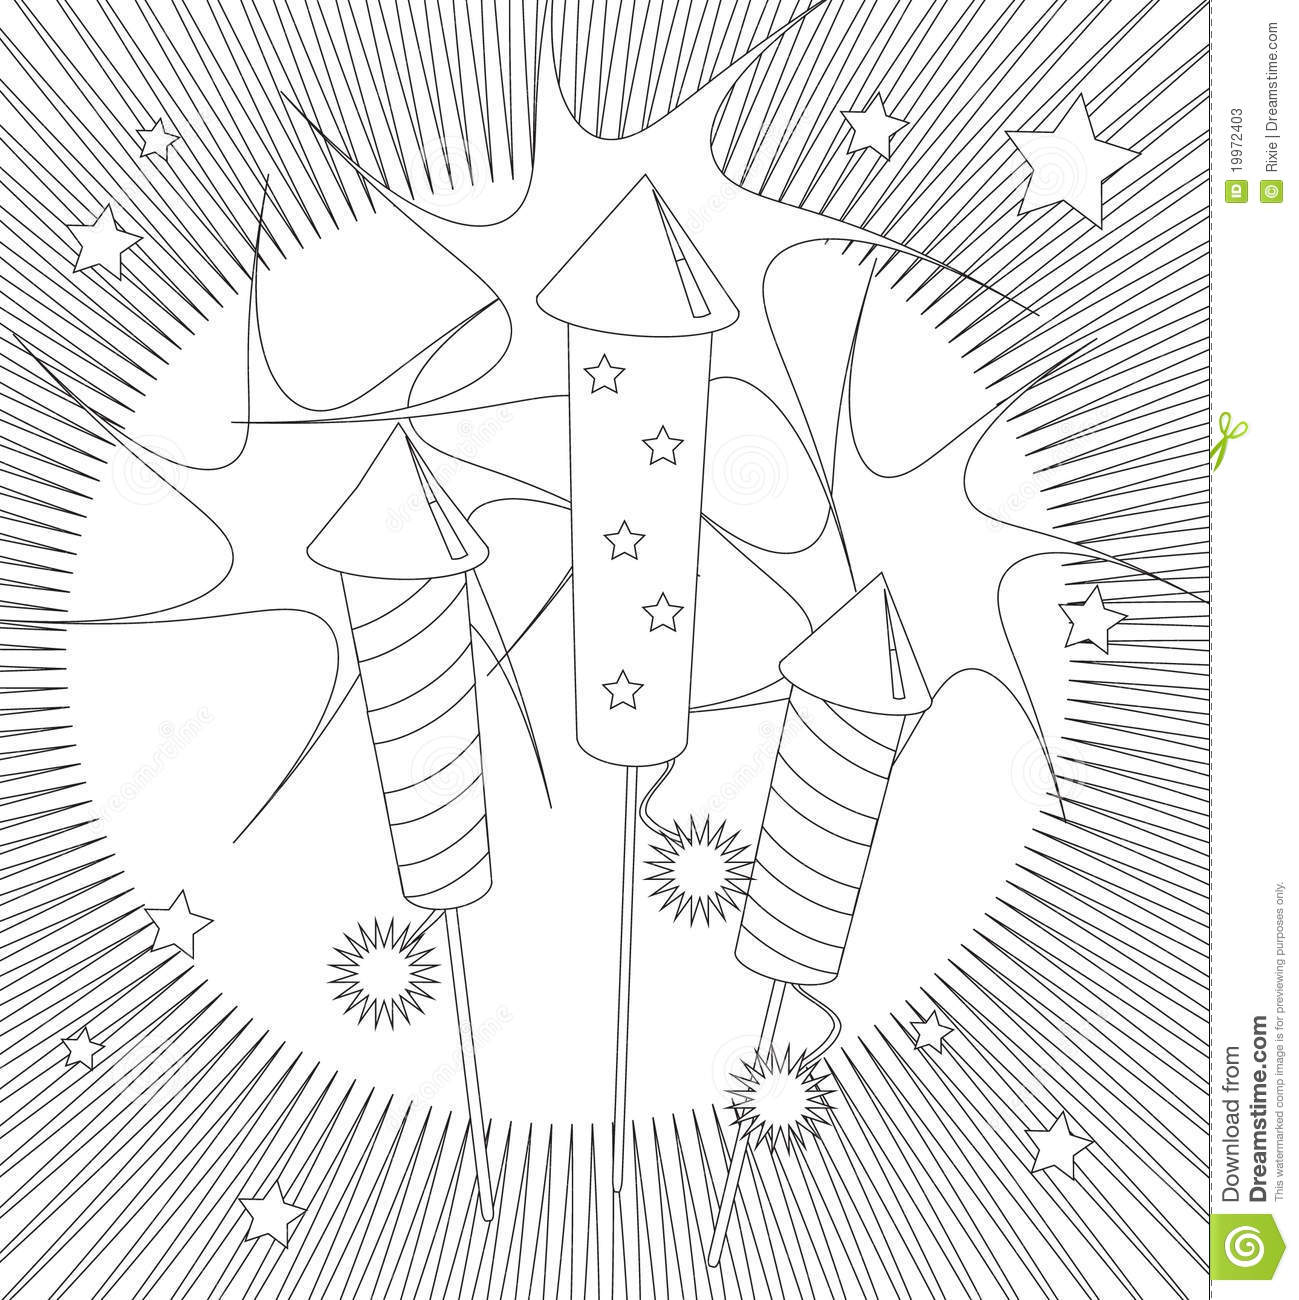 Fireworks colouring page stock vector. Illustration of fire - 19972403